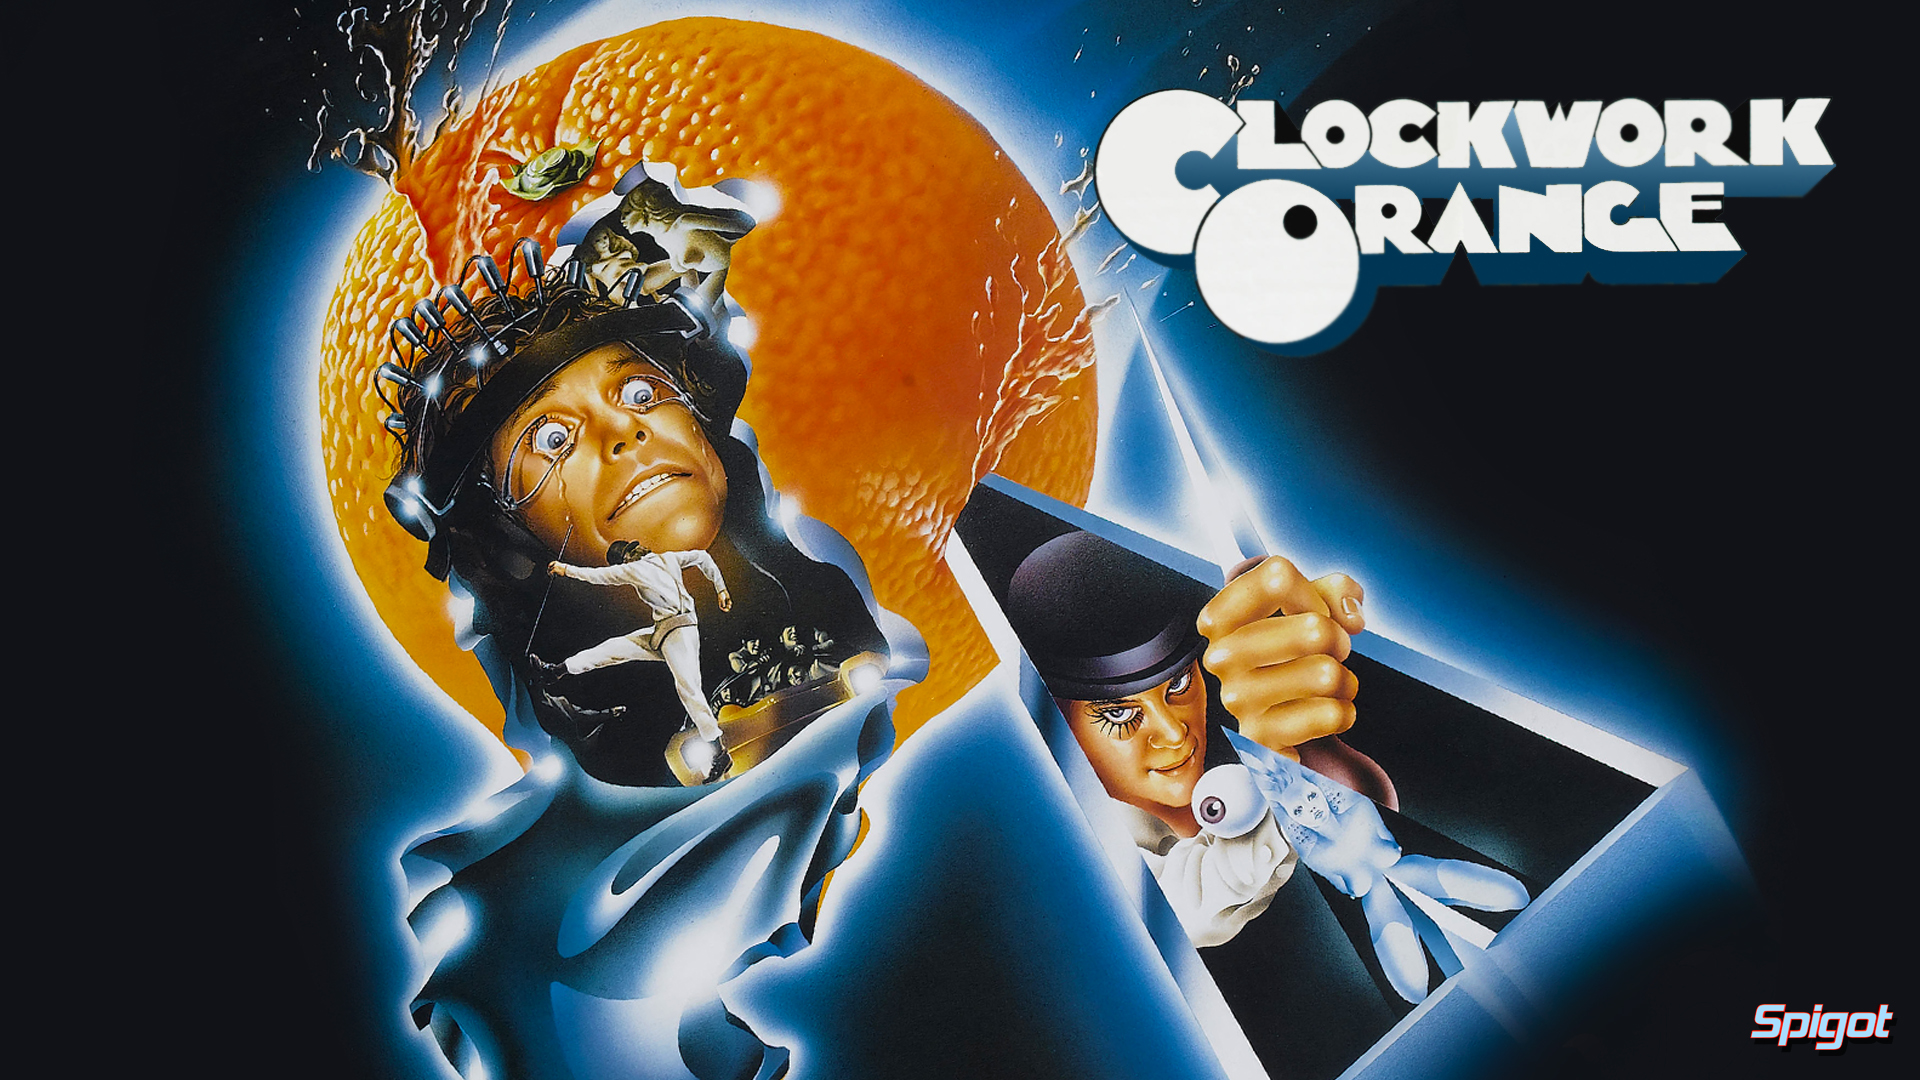 Stanley Kubrick | George Spigot's Blog A Clockwork Orange Wallpaper